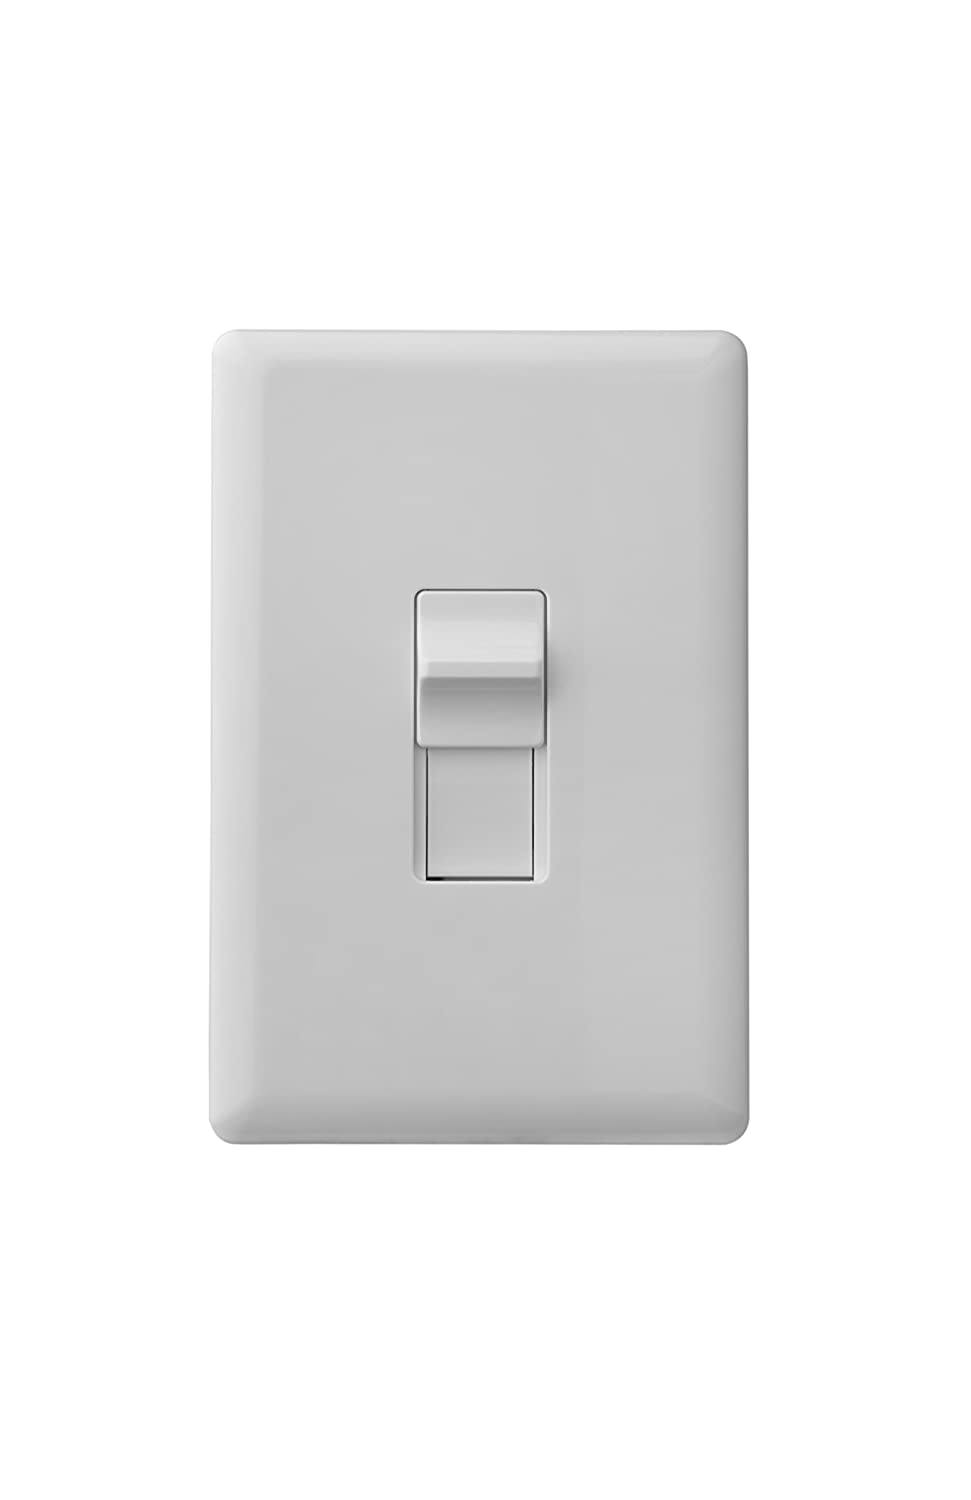 Amazon.com: Ecolink Z-Wave Plus Automated Light Switch Plug-in ...